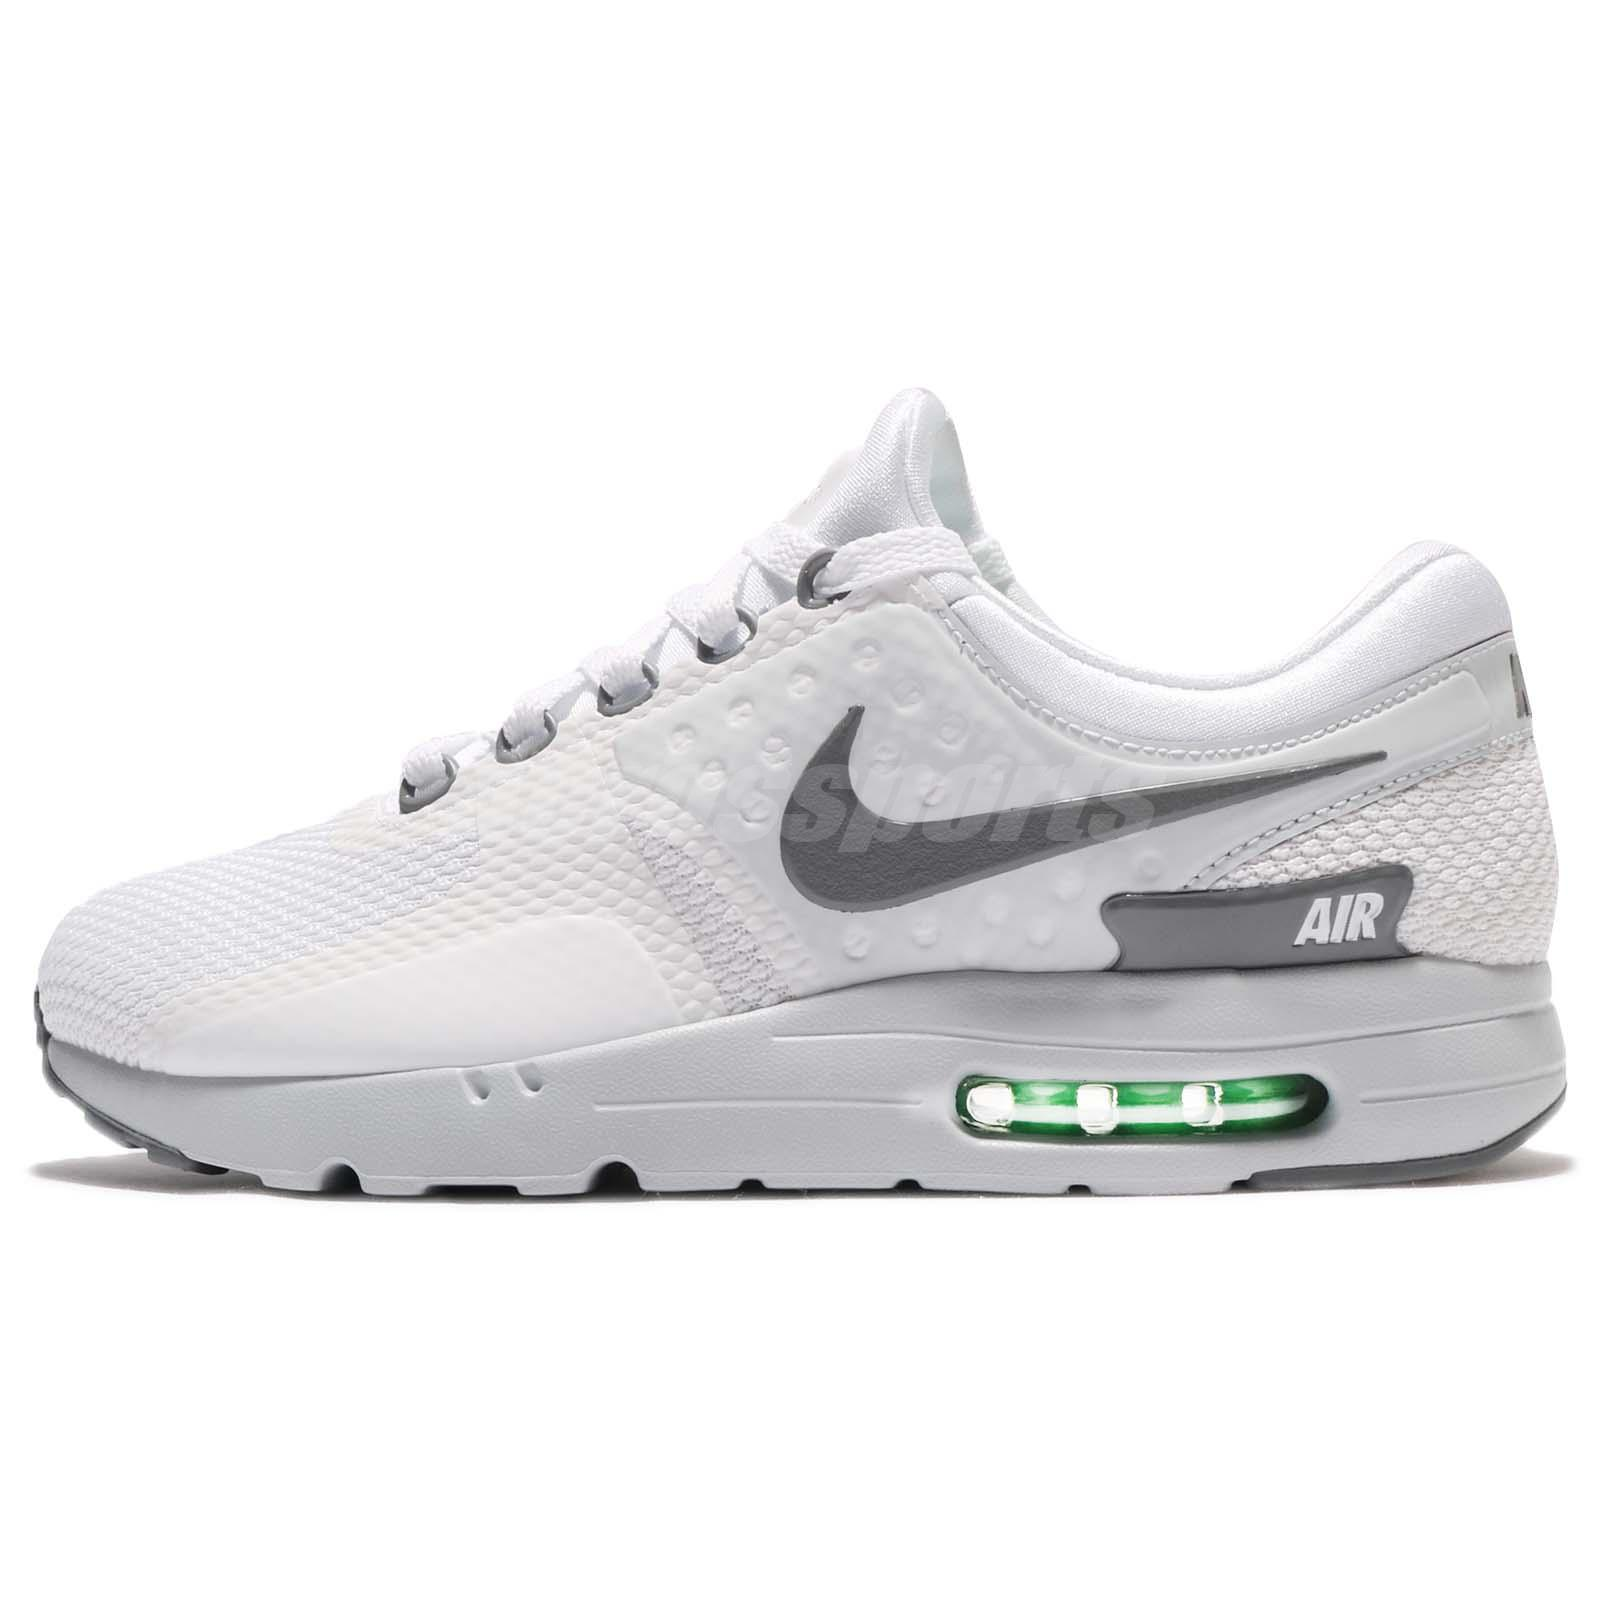 Nike Air Max Zero Essential White Cool Grey Men Running Shoes Sneaker  876070-102